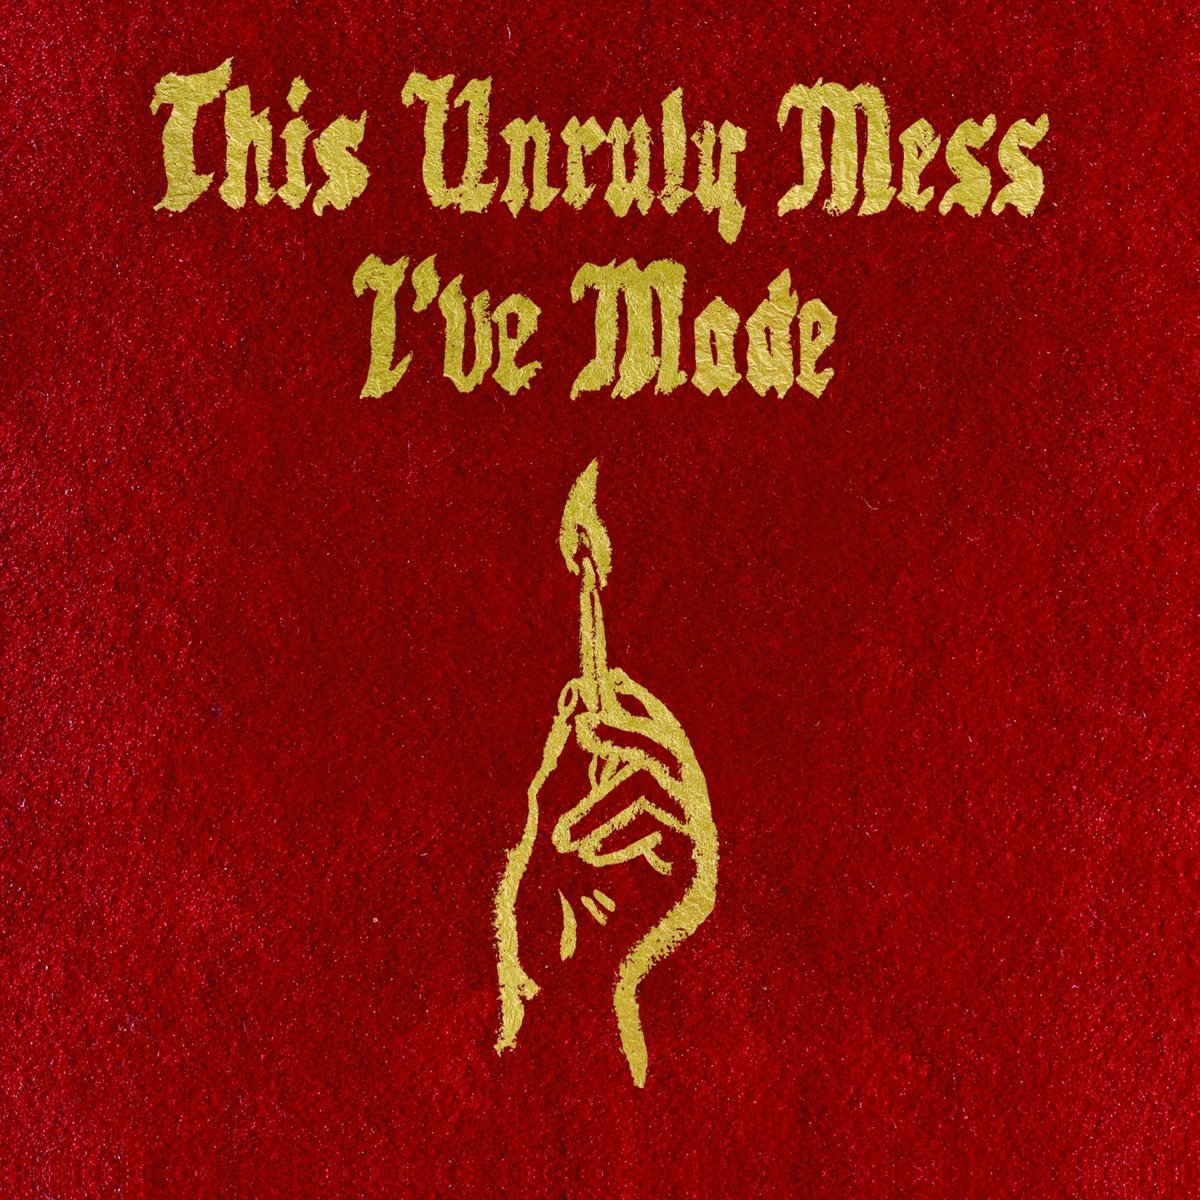 Macklemore & Ryan Lewis This Unruly Mess I've Made